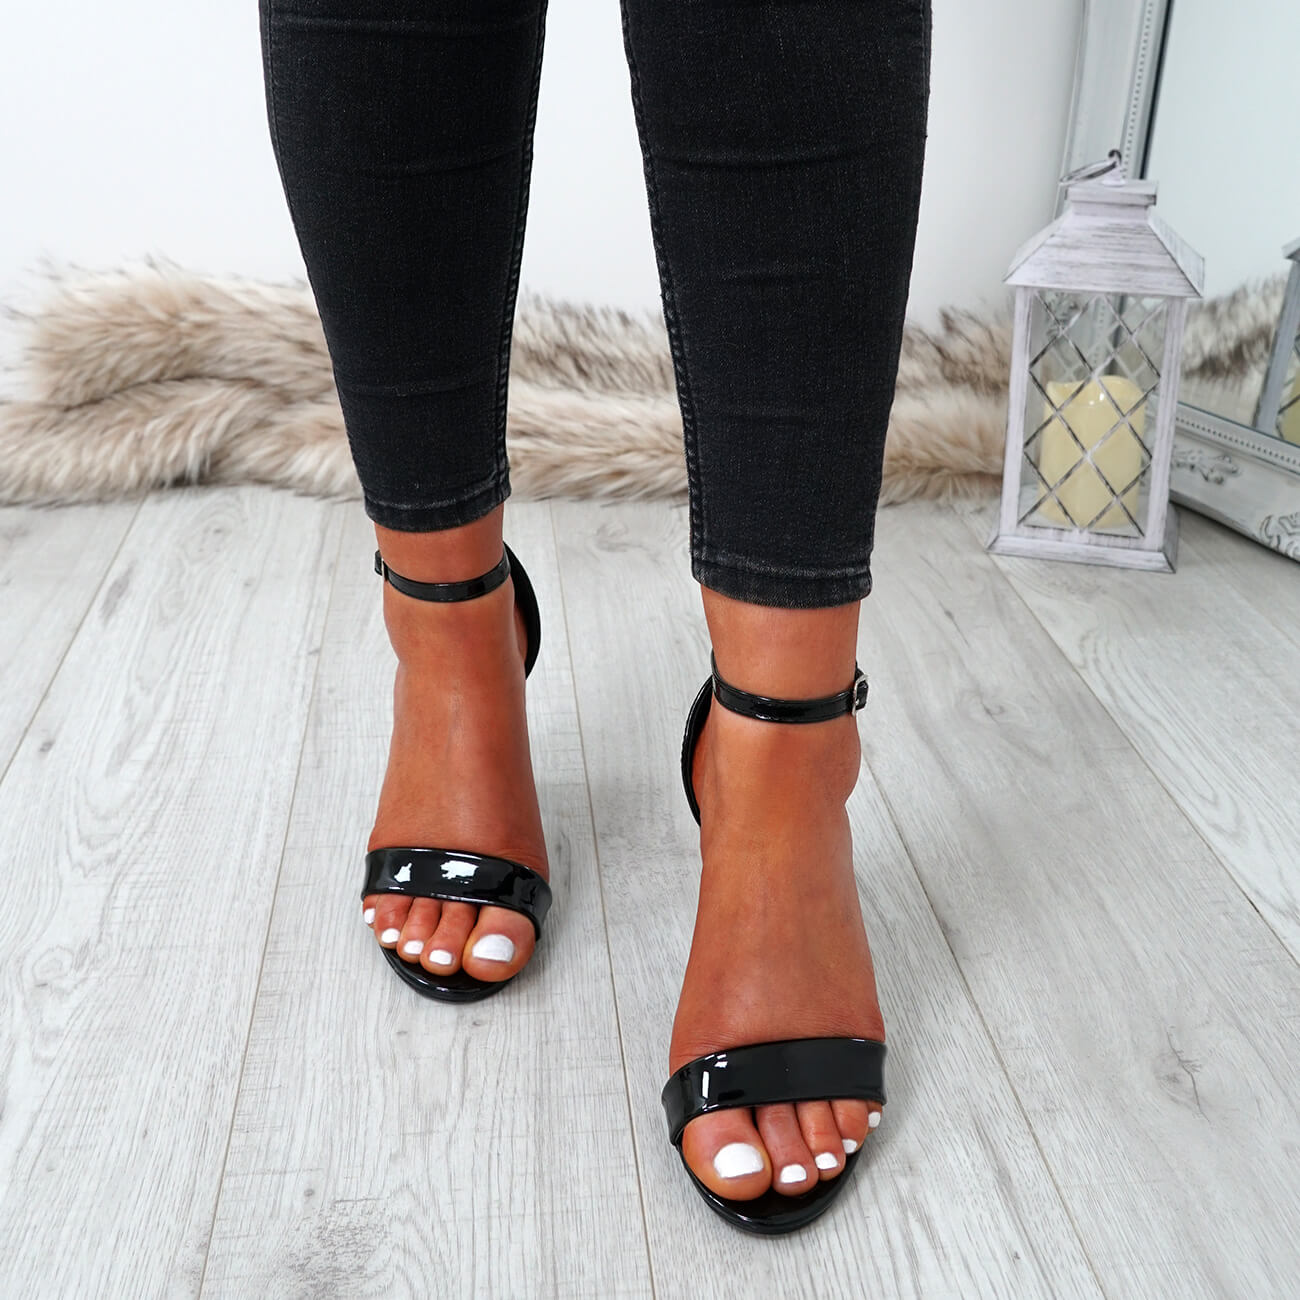 WOMENS-LADIES-ANKLE-STRAP-HIGH-BLOCK-HEEL-SANDALS-PEEP-TOE-PARTY-SHOES-SIZE thumbnail 10